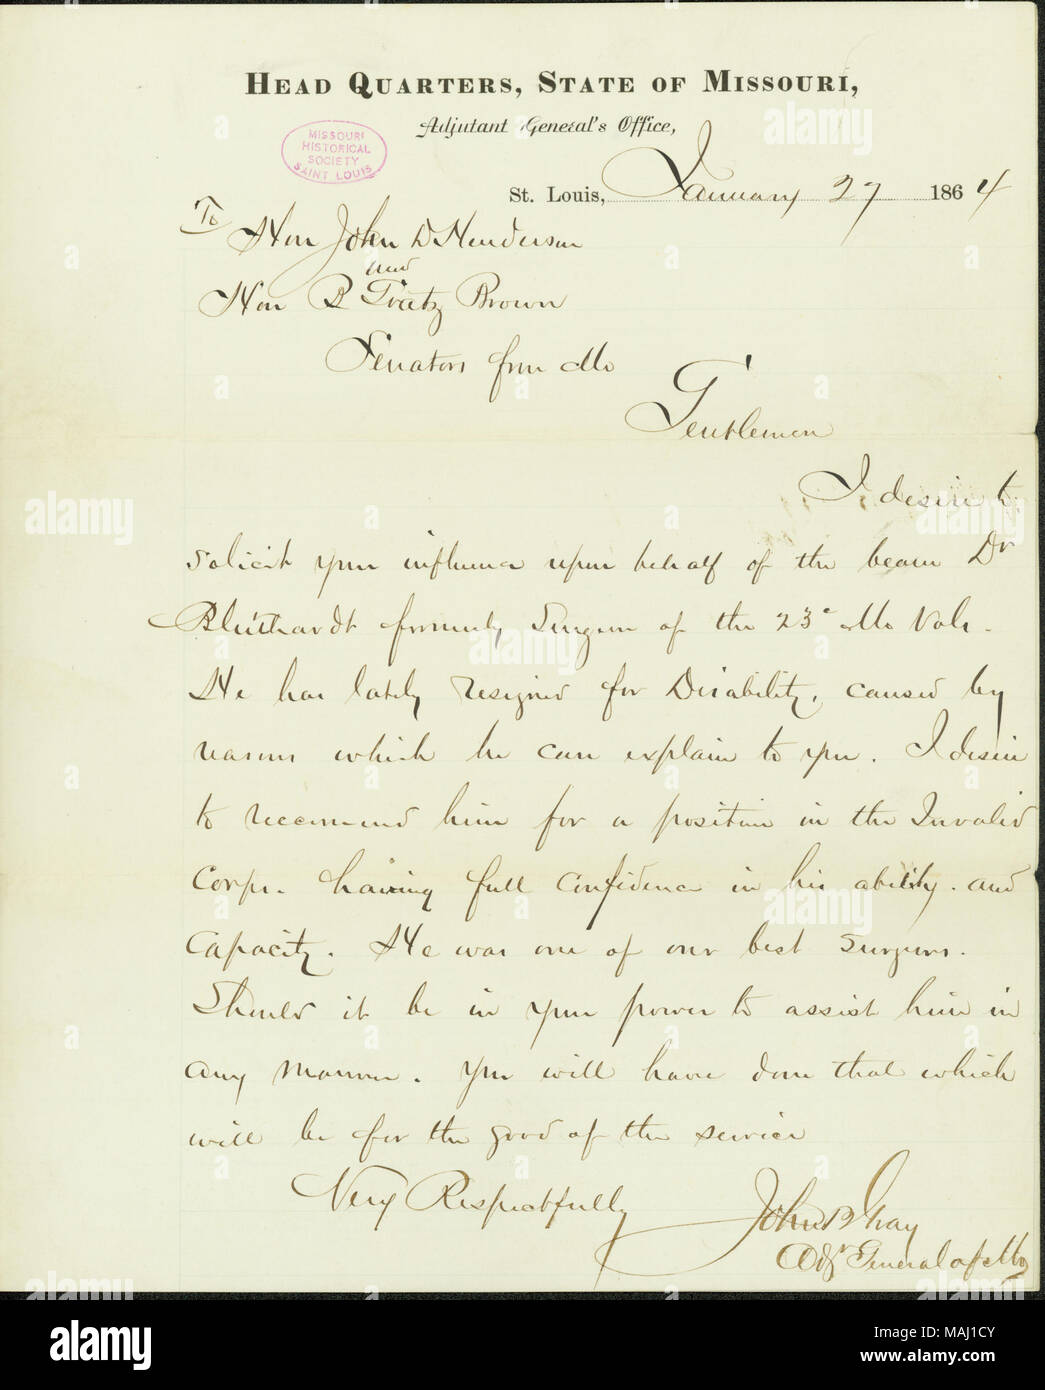 Solicits recommendations from henderson and brown for theodore j solicits recommendations from henderson and brown for theodore j bluthardts appointment in the invalid corps includes note on verso from henderson altavistaventures Choice Image